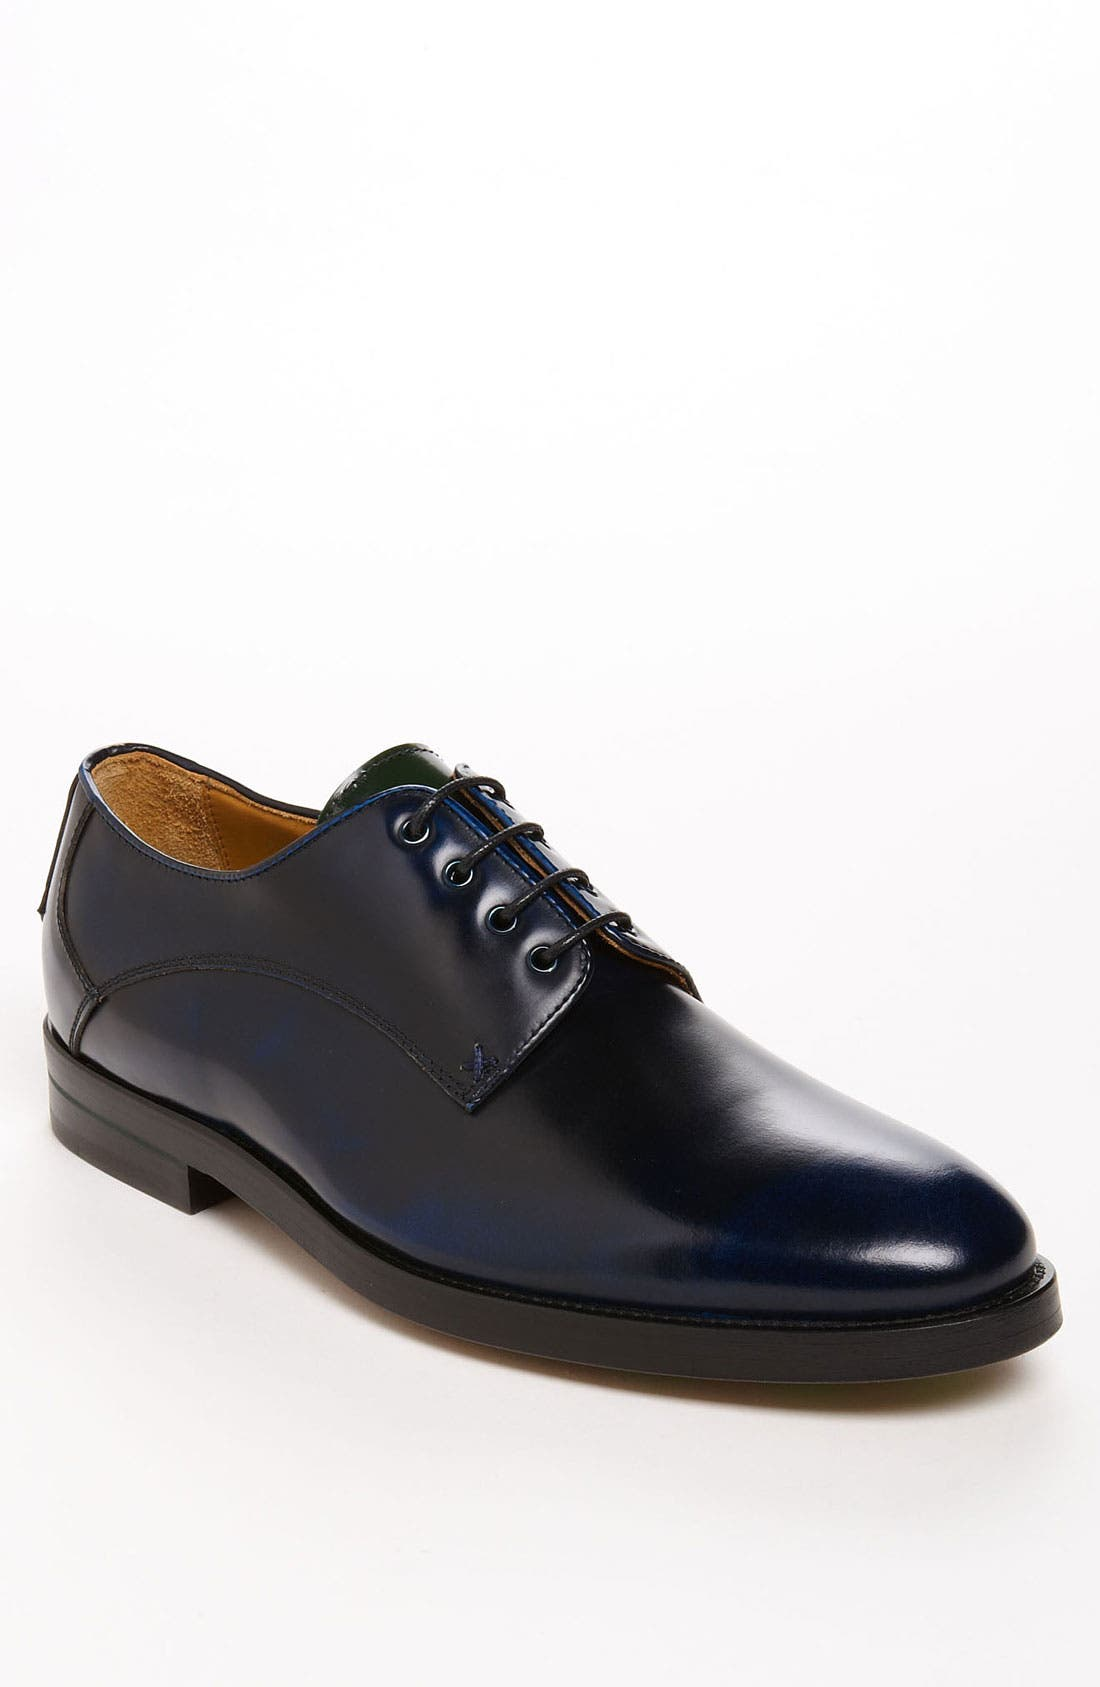 Alternate Image 1 Selected - Oliver Sweeney 'Santo' Plain Toe Oxford